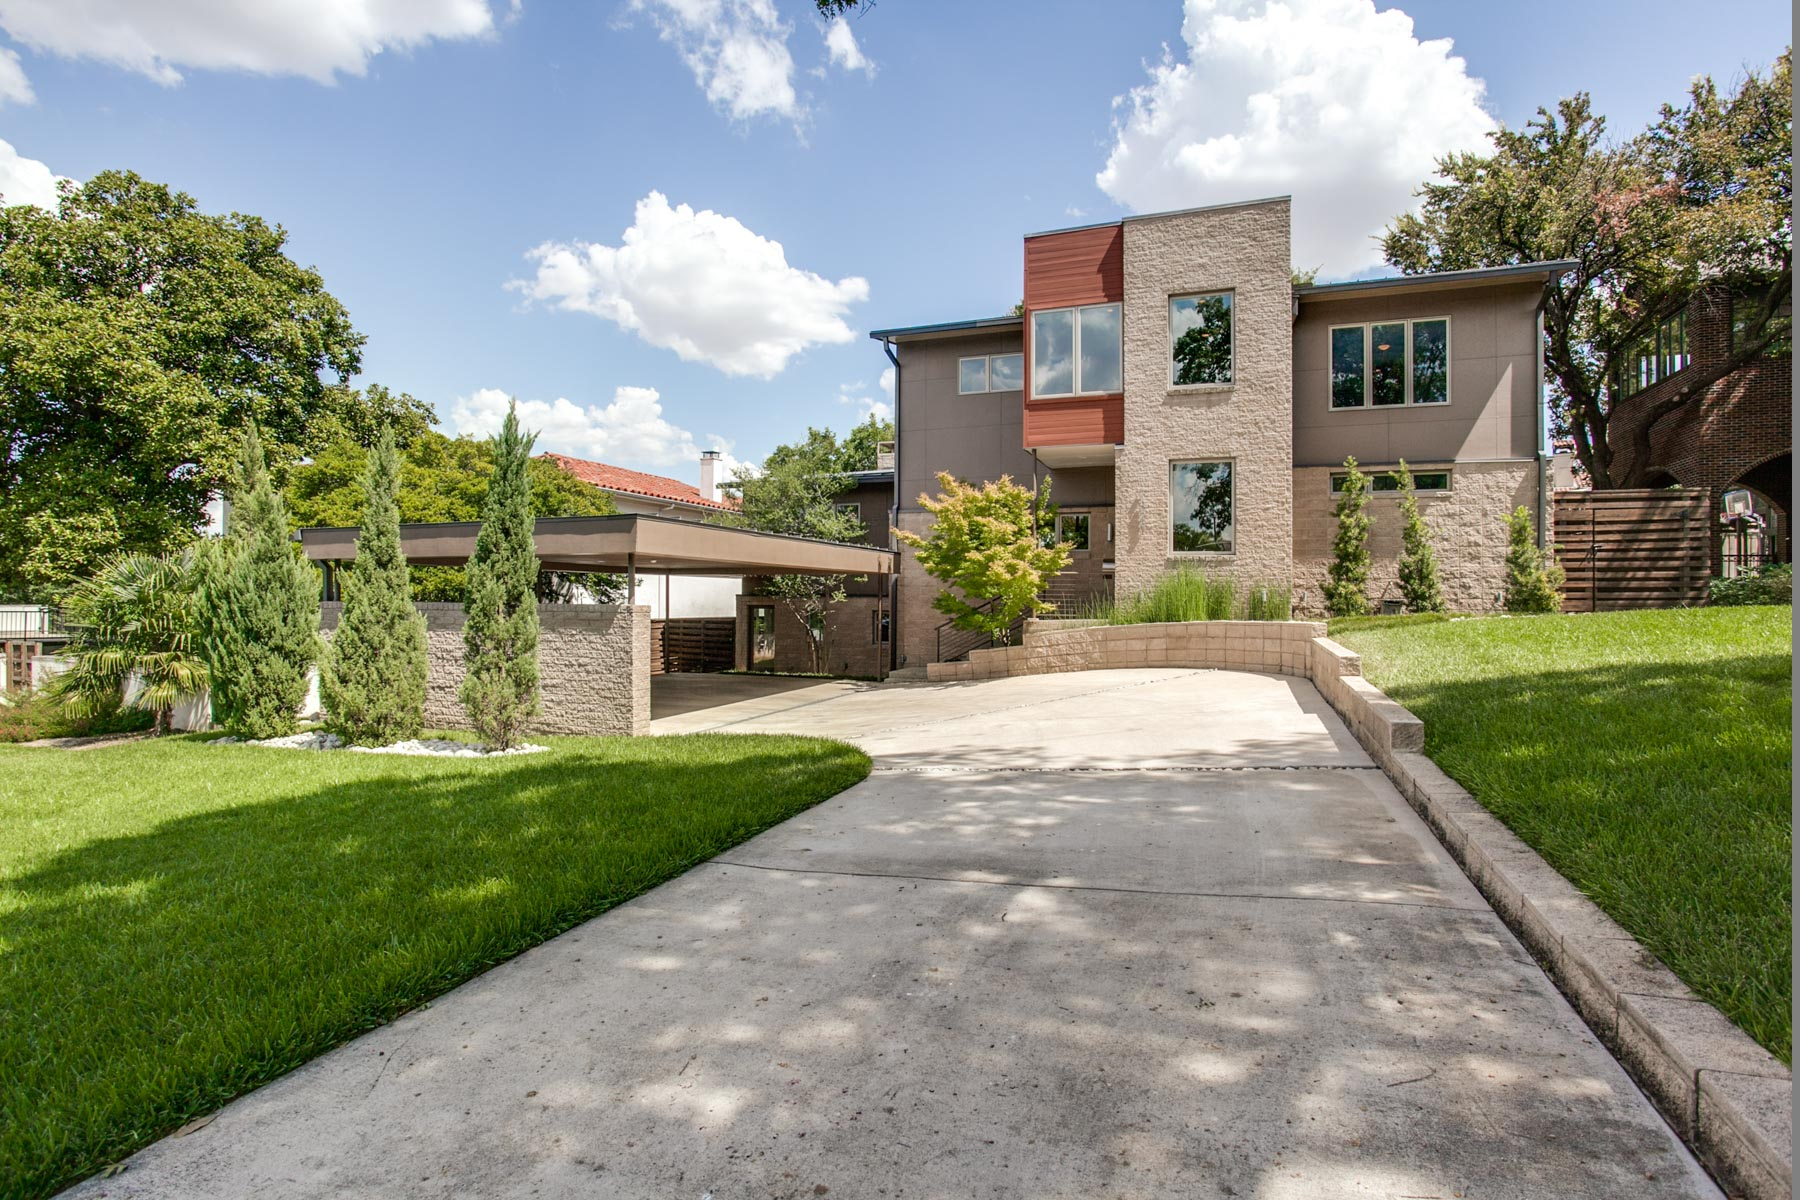 Single Family Home for Sale at Lakewood Contemporary 7326 Lakewood Boulevard Dallas, Texas, 75214 United States